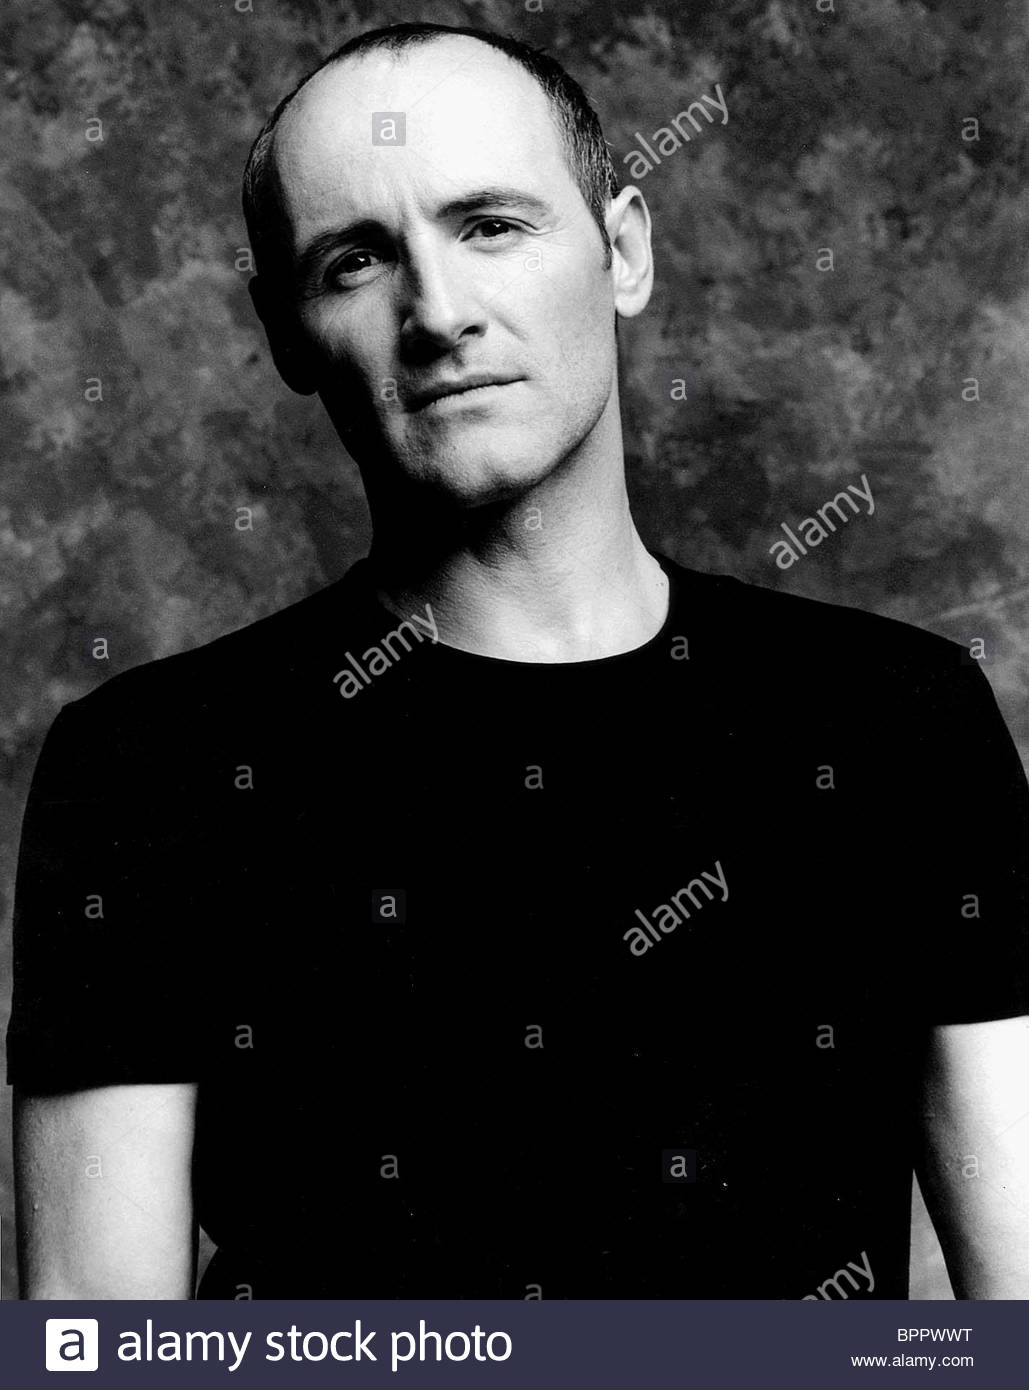 Colm Feore Colm Feore new pictures